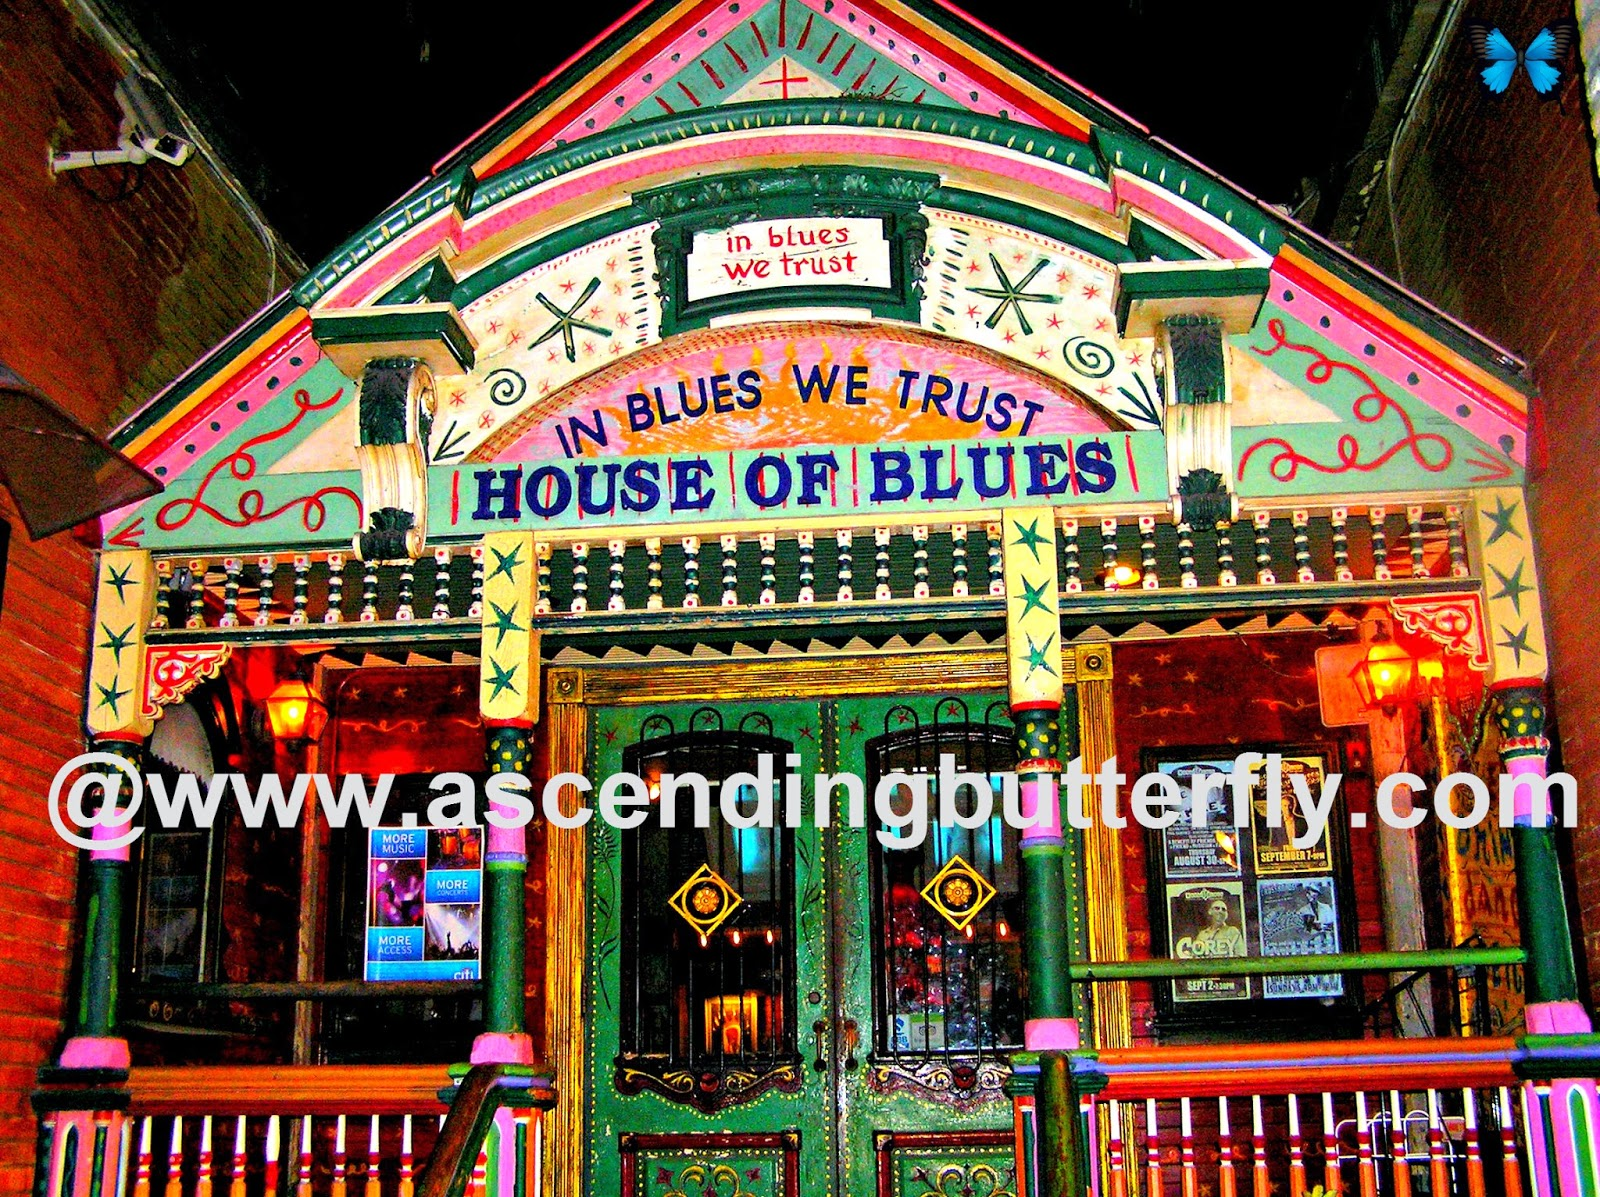 House of Blues New Orleans, Louisiana, Travel Tourism, Photography, Blues, Music